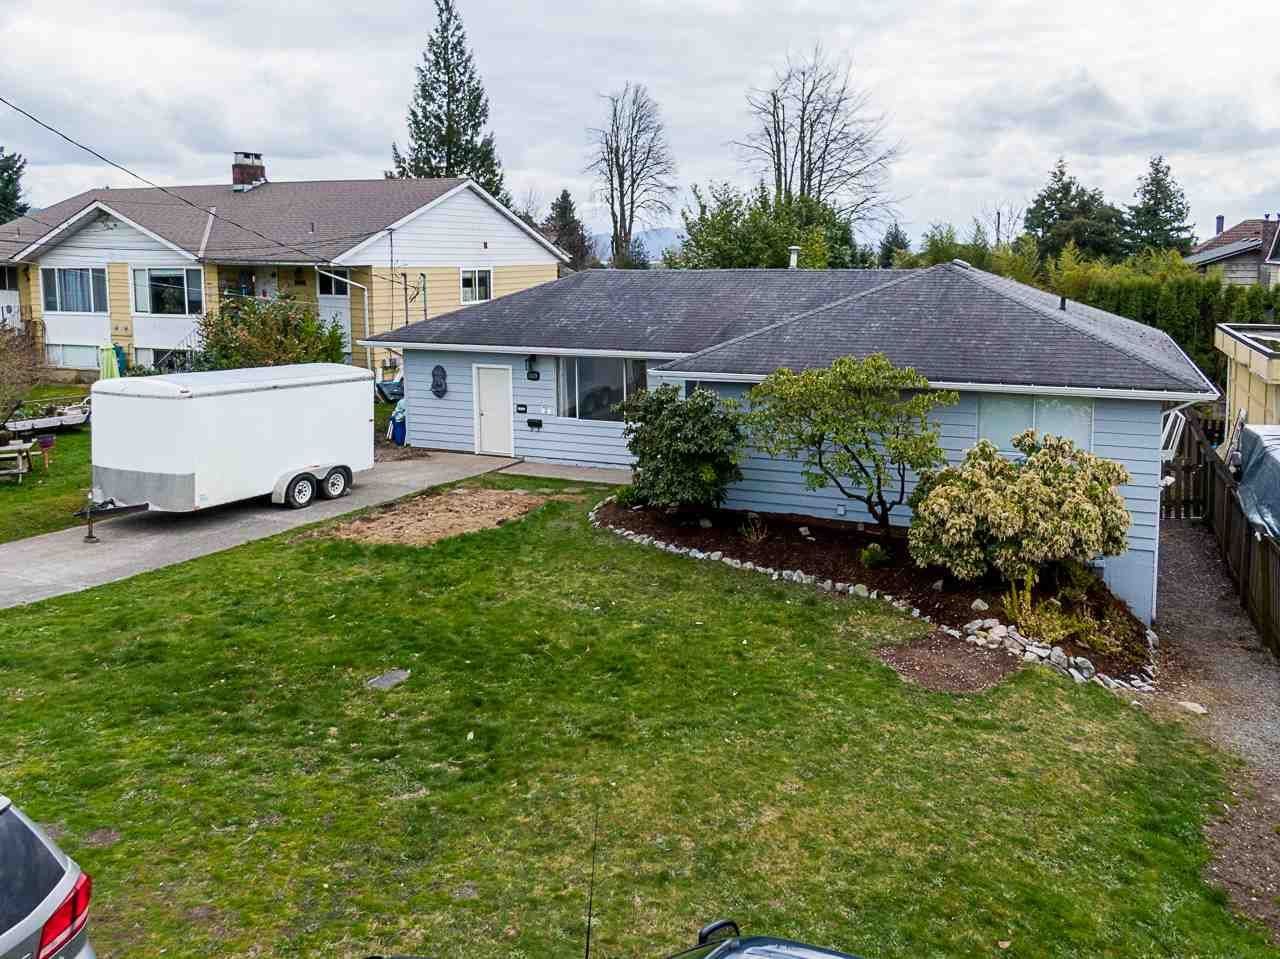 Main Photo: 33428 3 Avenue in Mission: Mission BC House for sale : MLS®# R2558393